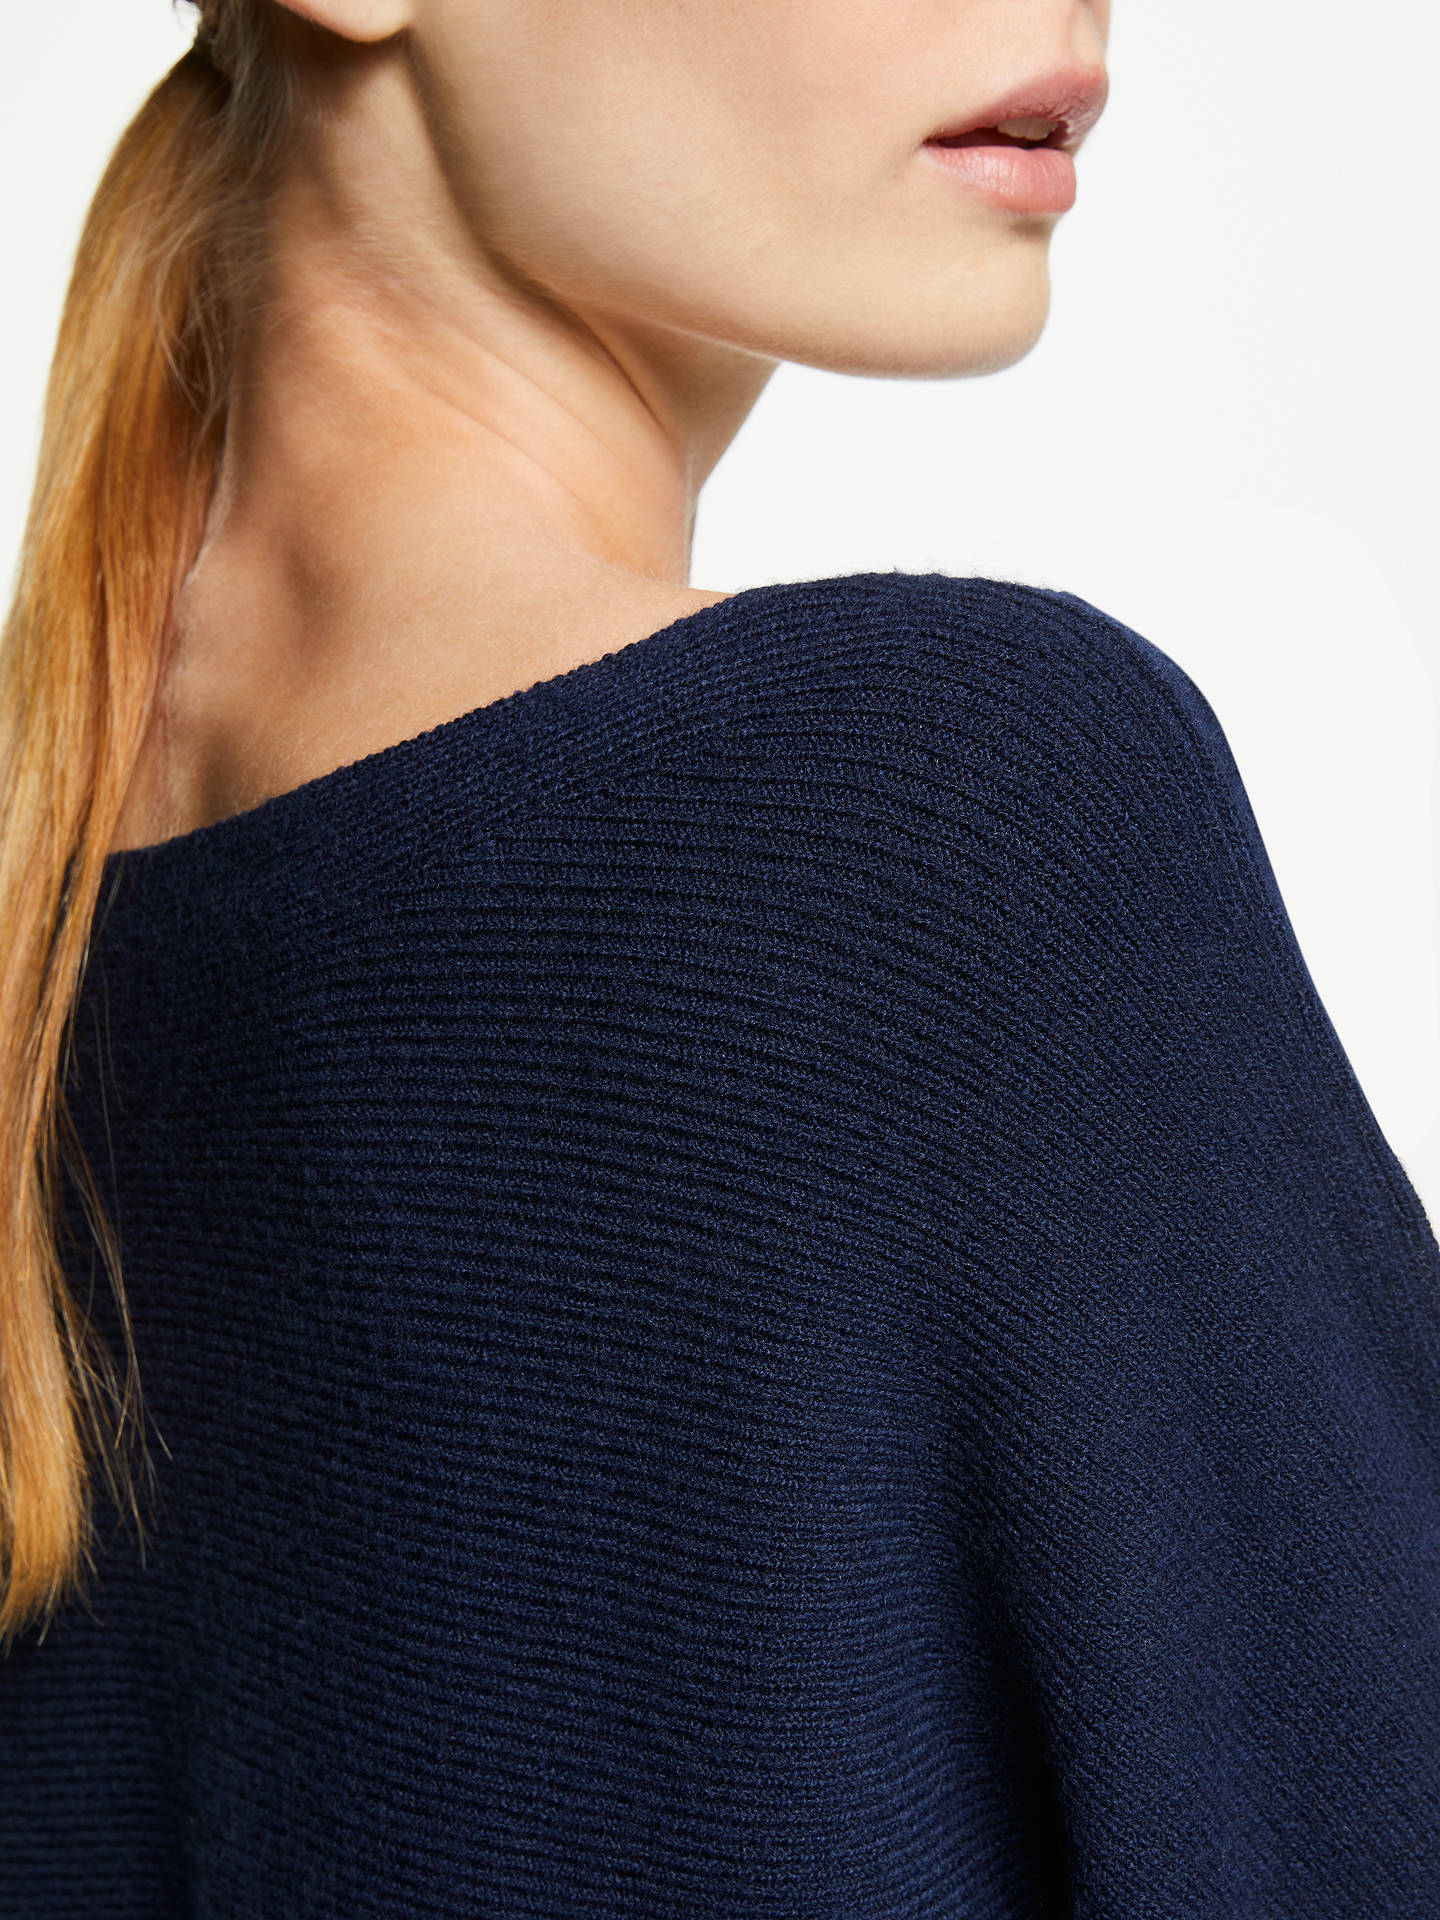 BuyJohn Lewis & Partners Dolman Sleeve Ribbed Boat Neck Jumper, Navy, 8 Online at johnlewis.com